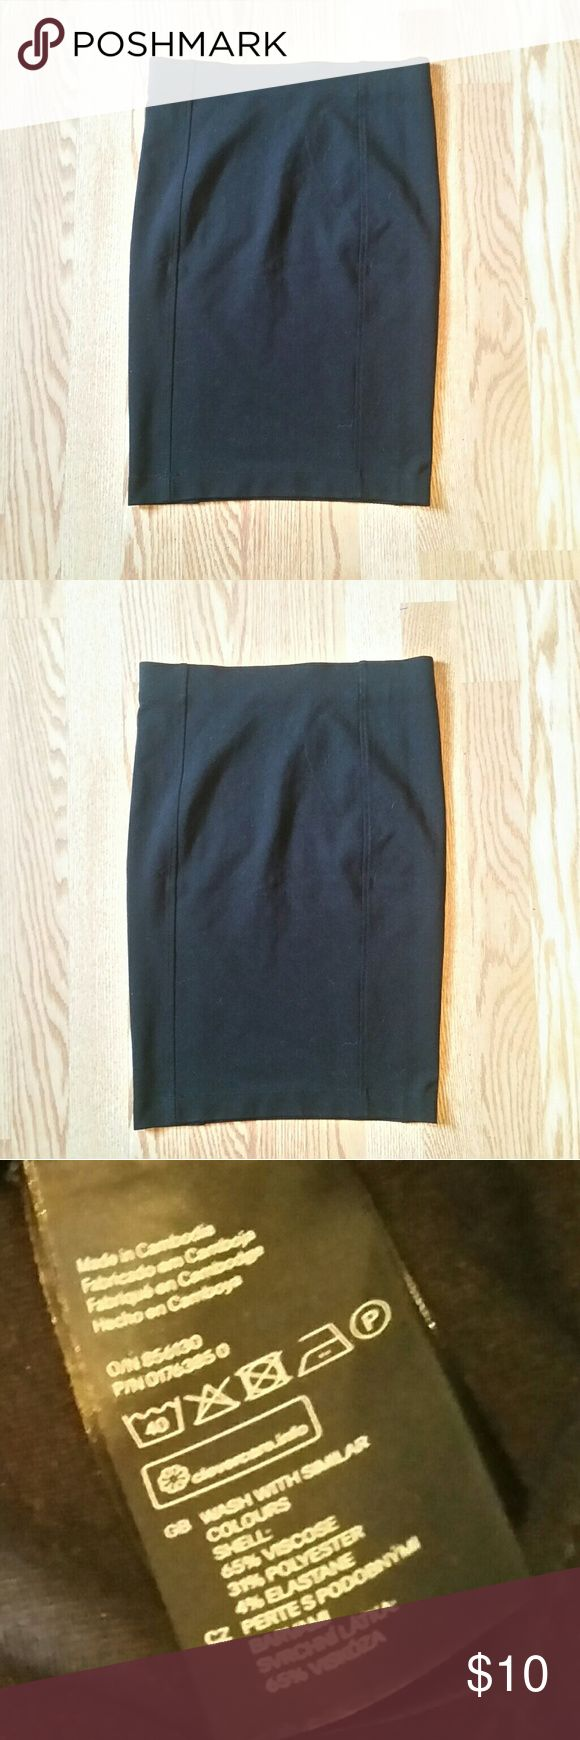 Black H&M Skirt Black H&M tight black skirt, size small. Viscose, polyester and elastane mix. Fits snug! Excellent preowned condition with no flaws - I wore once or twice. Perfect for going out or business casual look! H&M Skirts